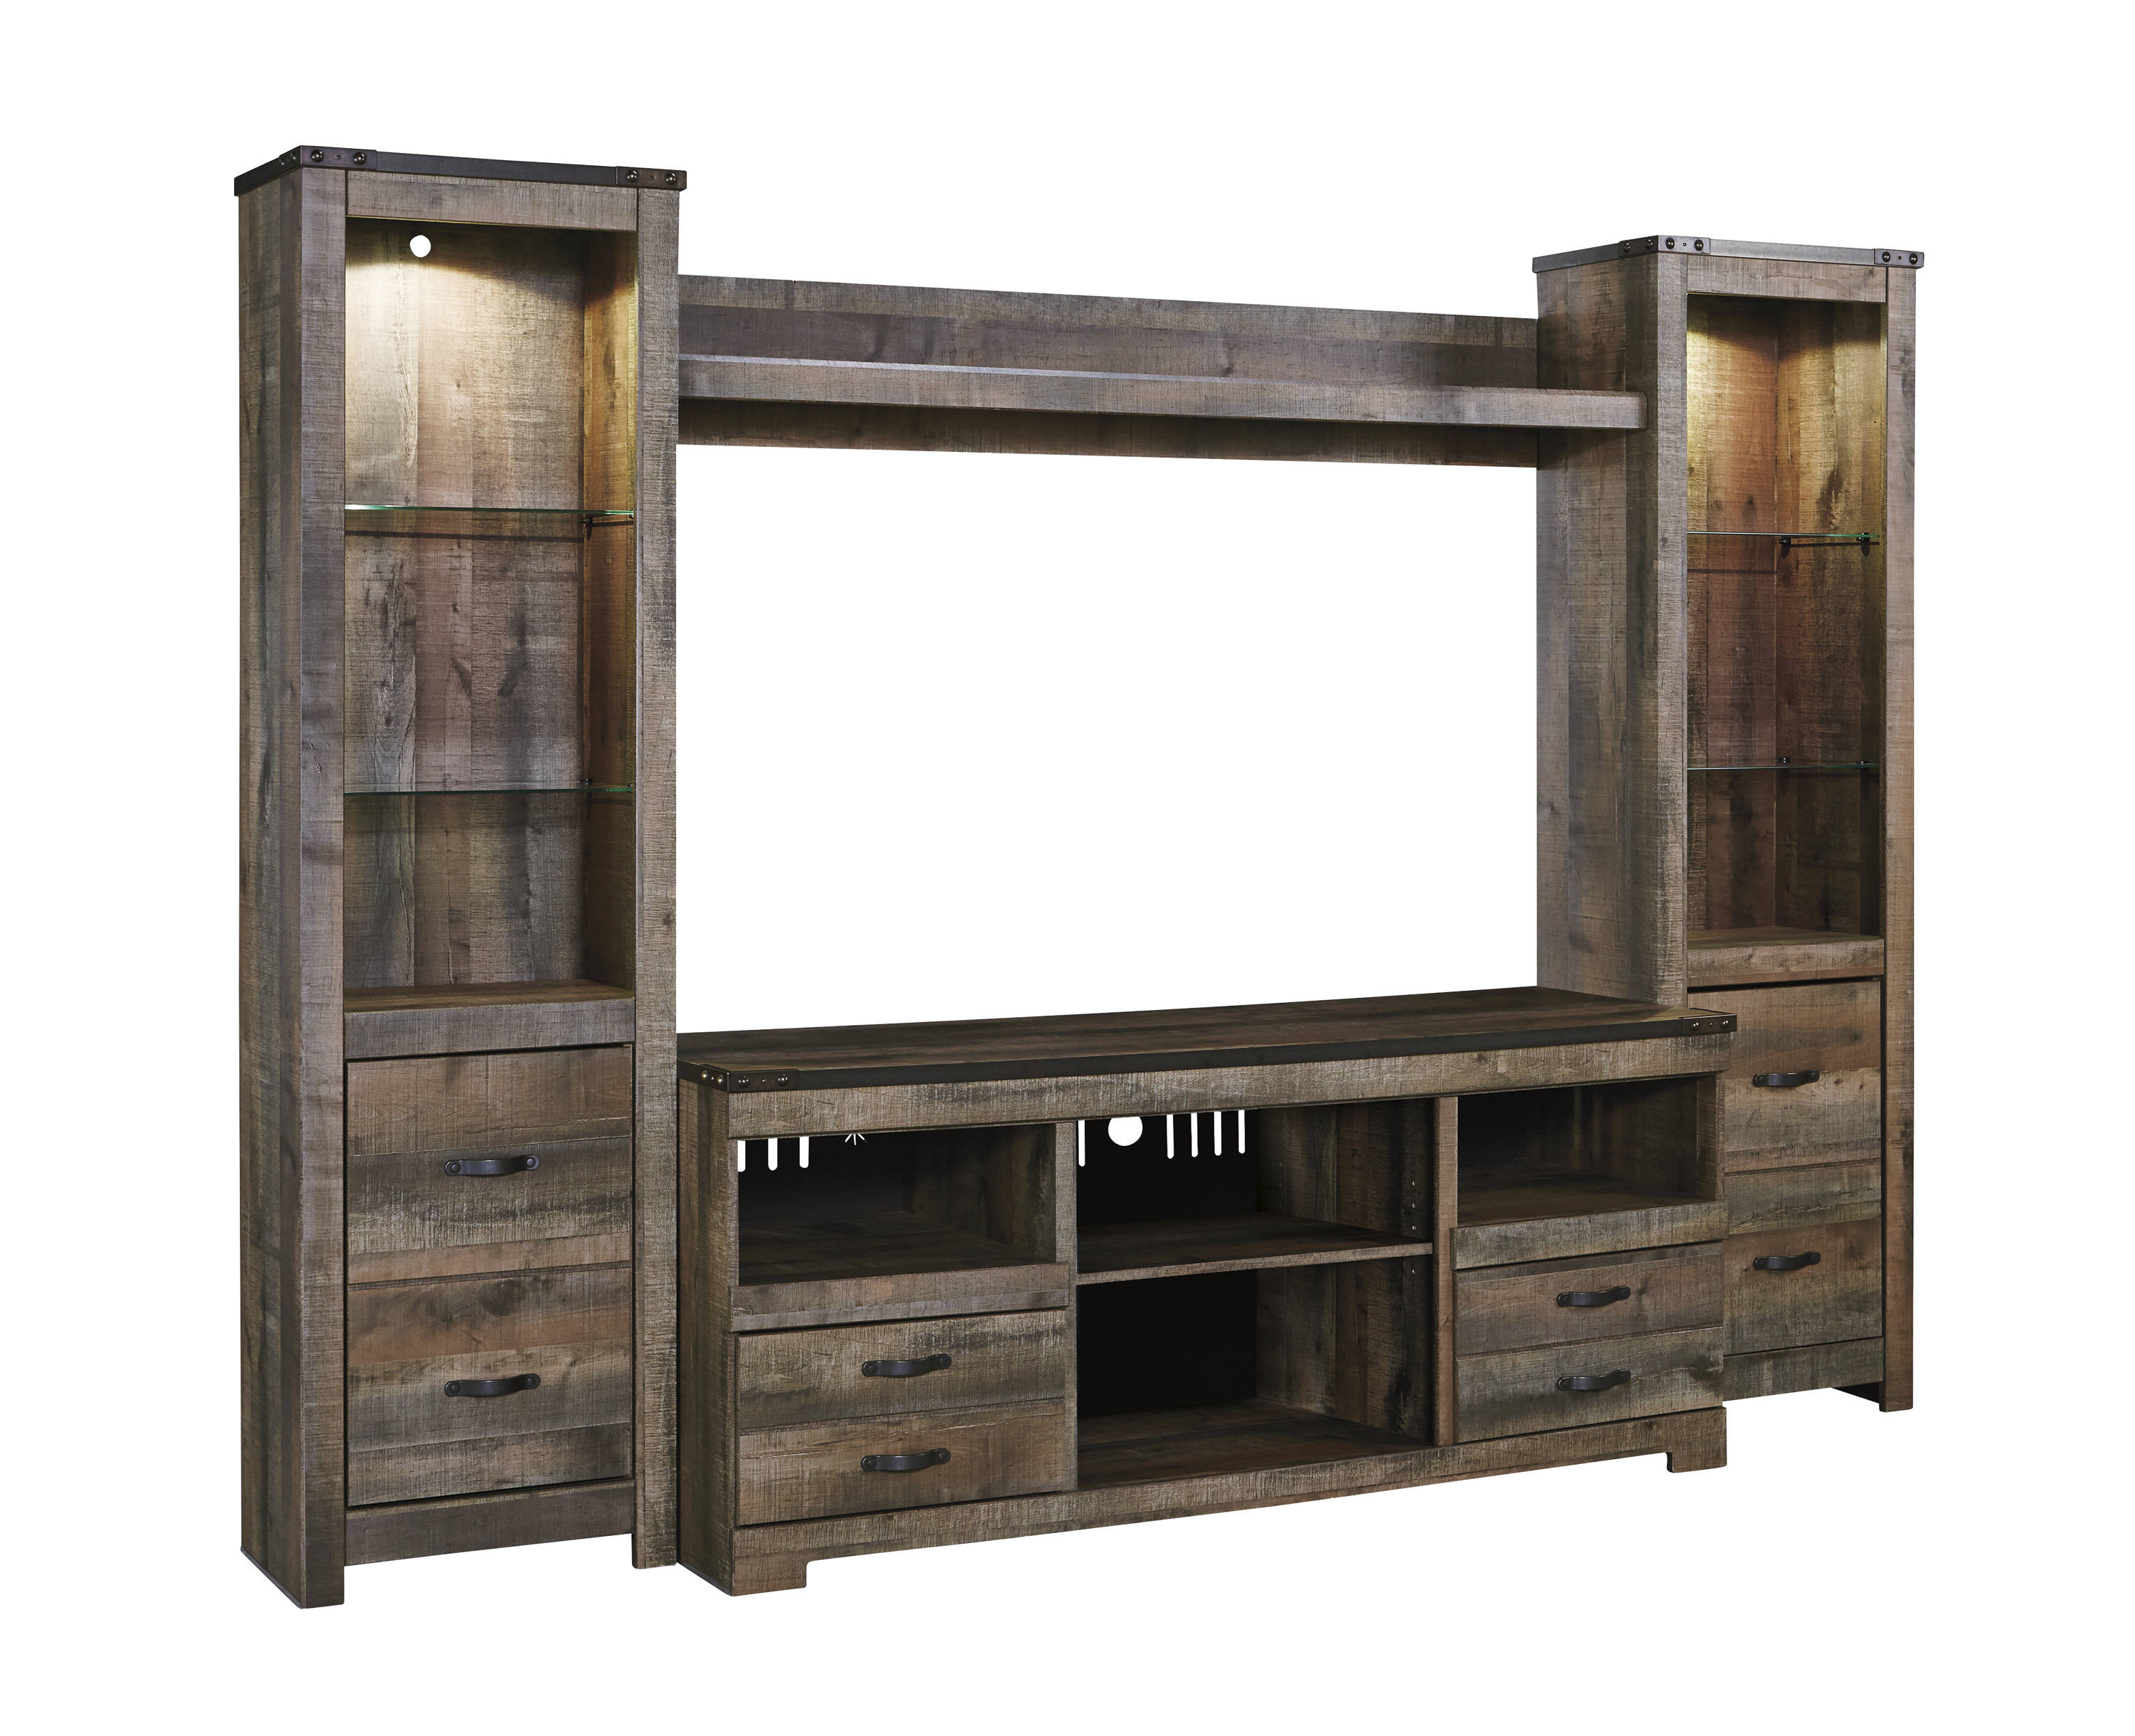 Ashley Furniture Trinell Brown Entertainment Center Wall Click To Enlarge